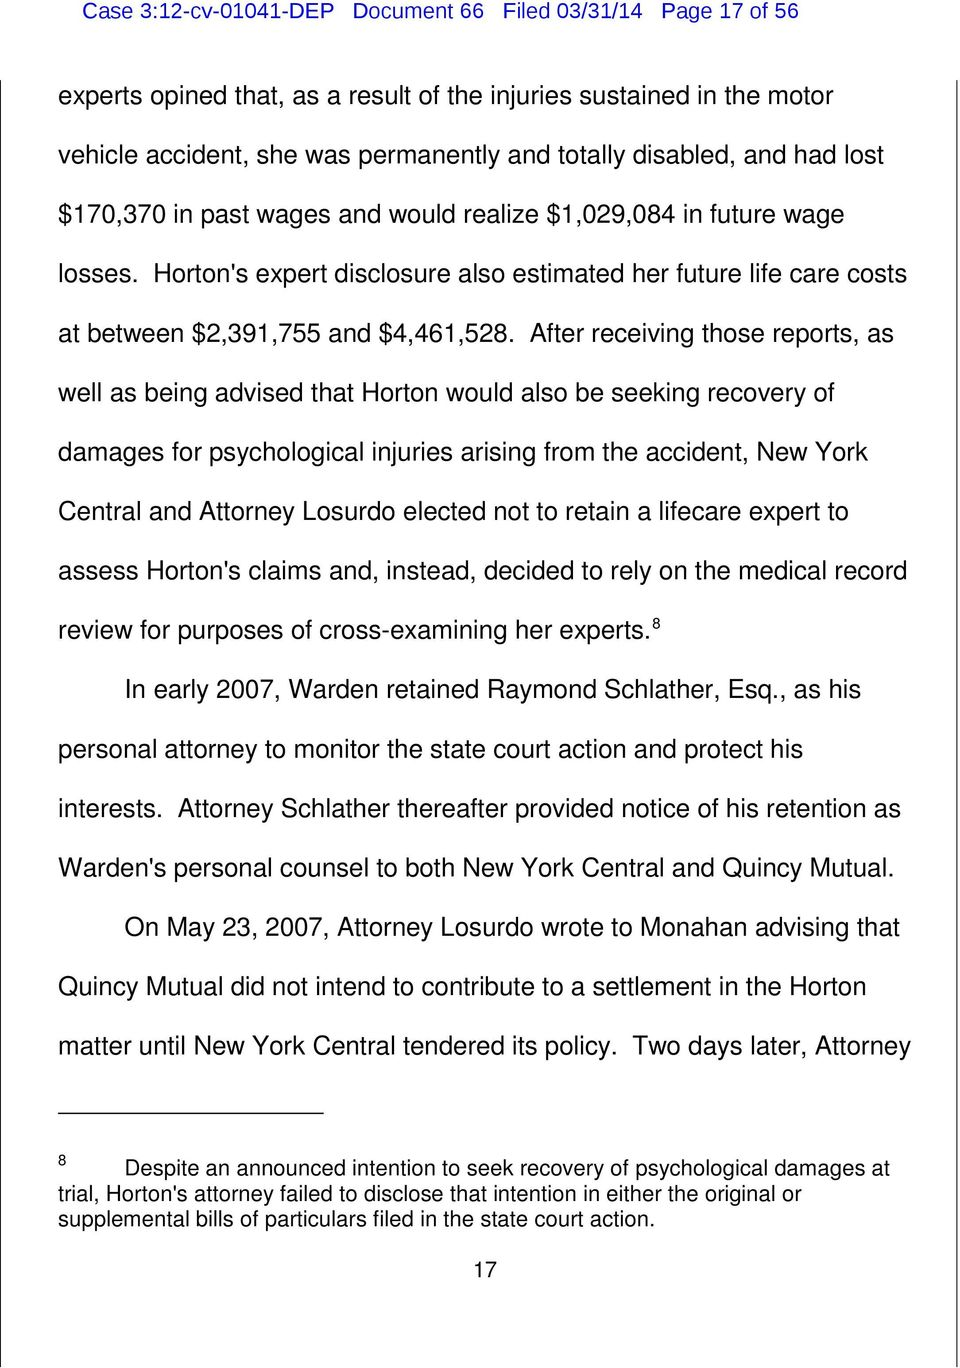 After receiving those reports, as well as being advised that Horton would also be seeking recovery of damages for psychological injuries arising from the accident, New York Central and Attorney